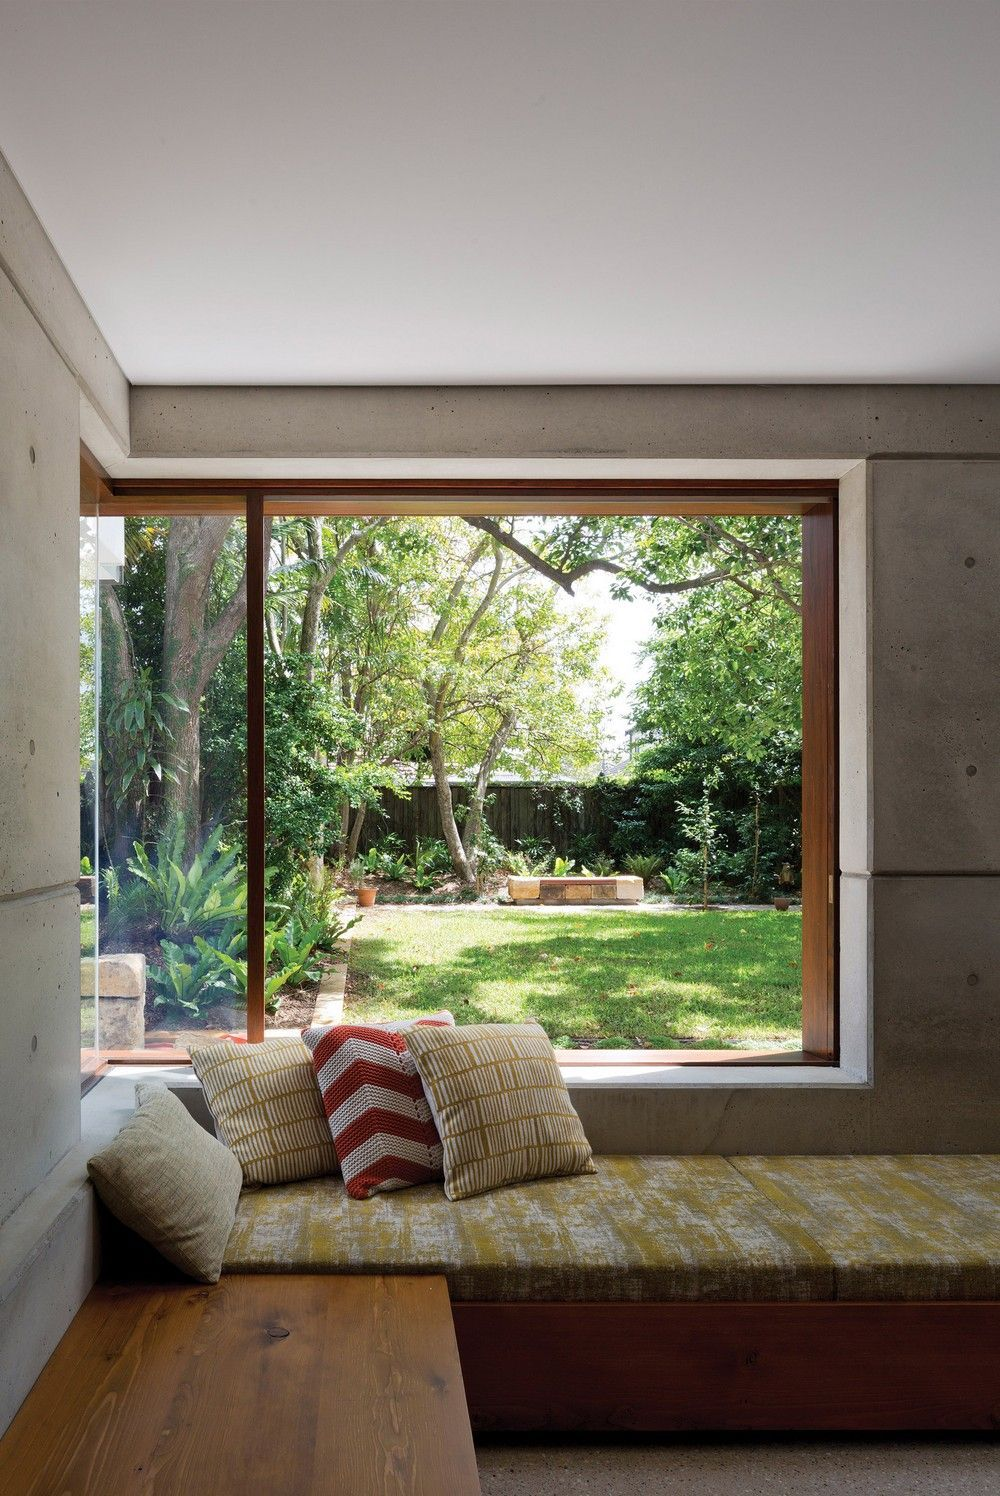 Modern window ideas    modern interior design home ideas for inspiration decorating